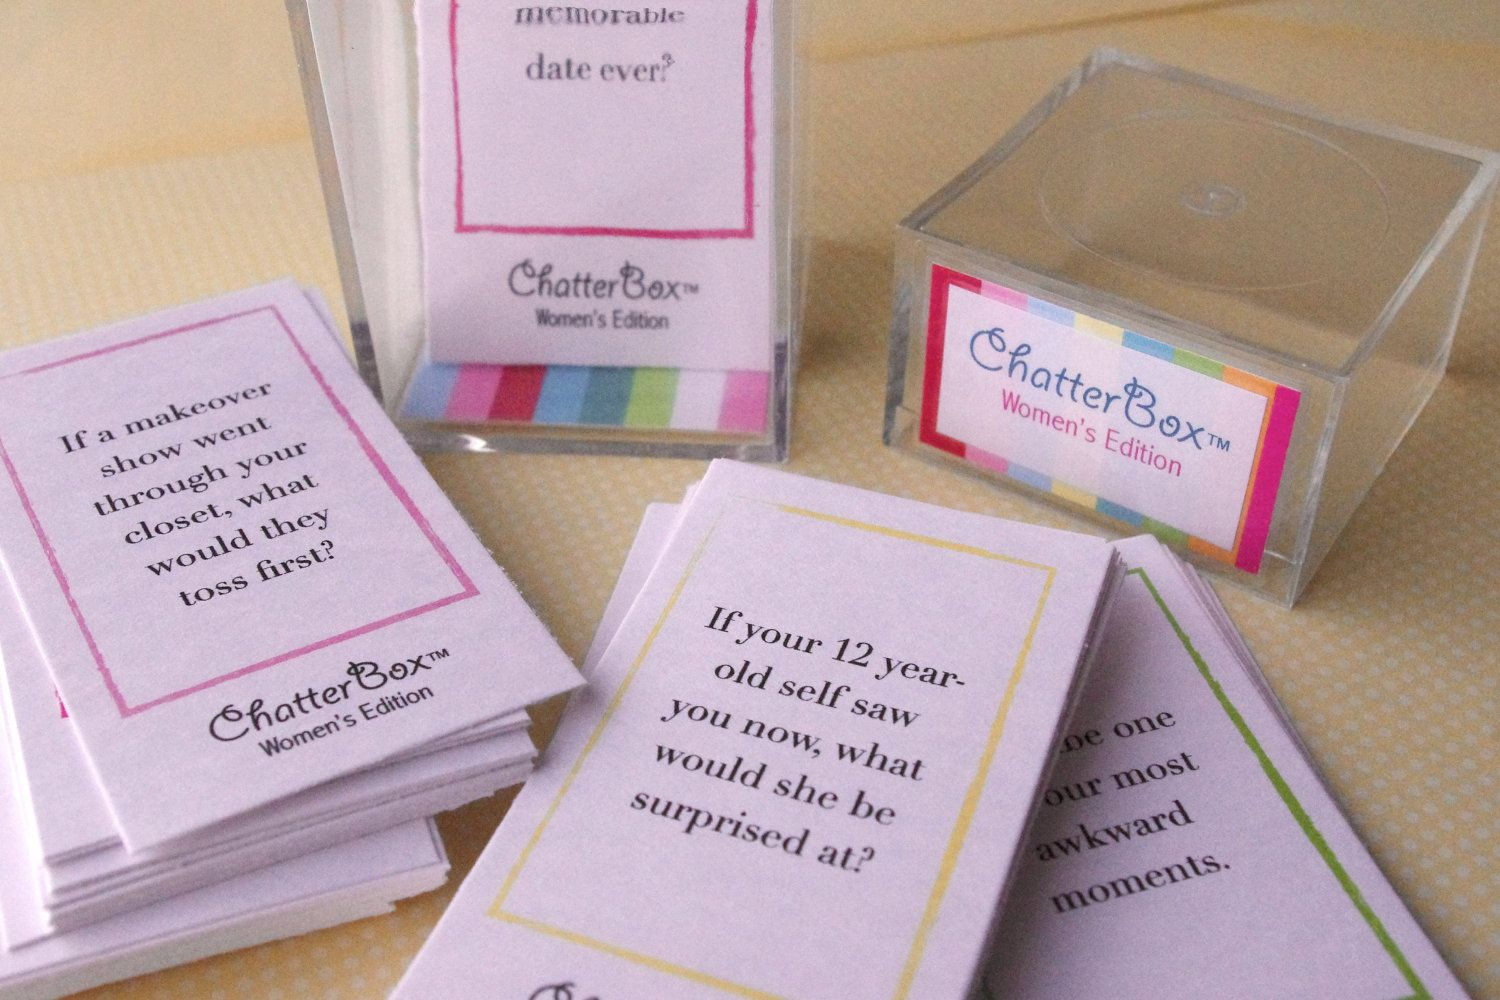 INSTANT DOWNLOAD - ChatterBox Conversation Game - Women's